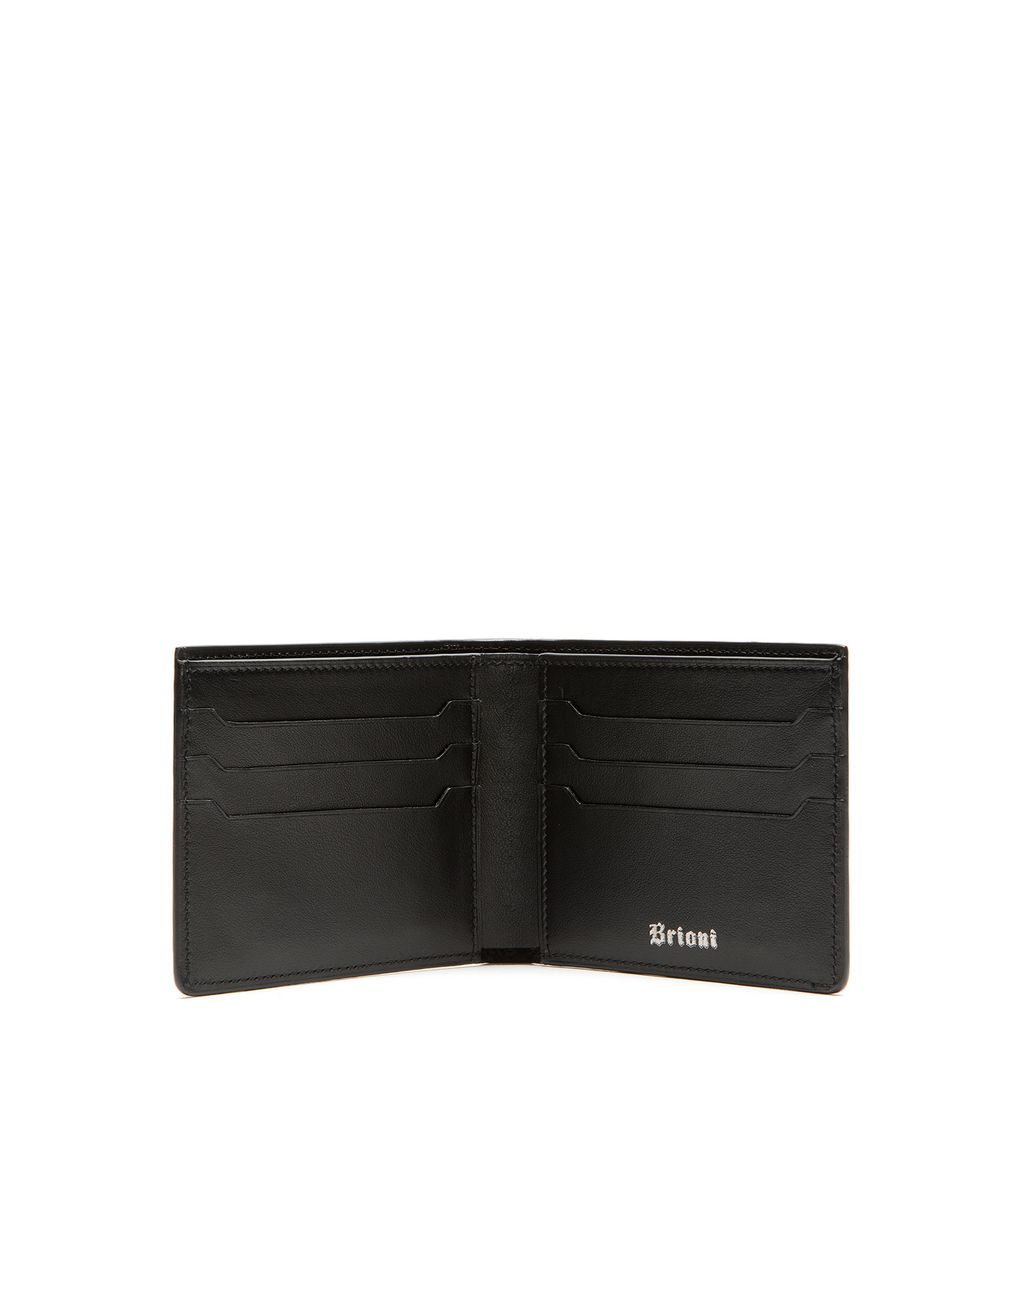 BRIONI Oxblood Slim Wallet Leather Goods Man r